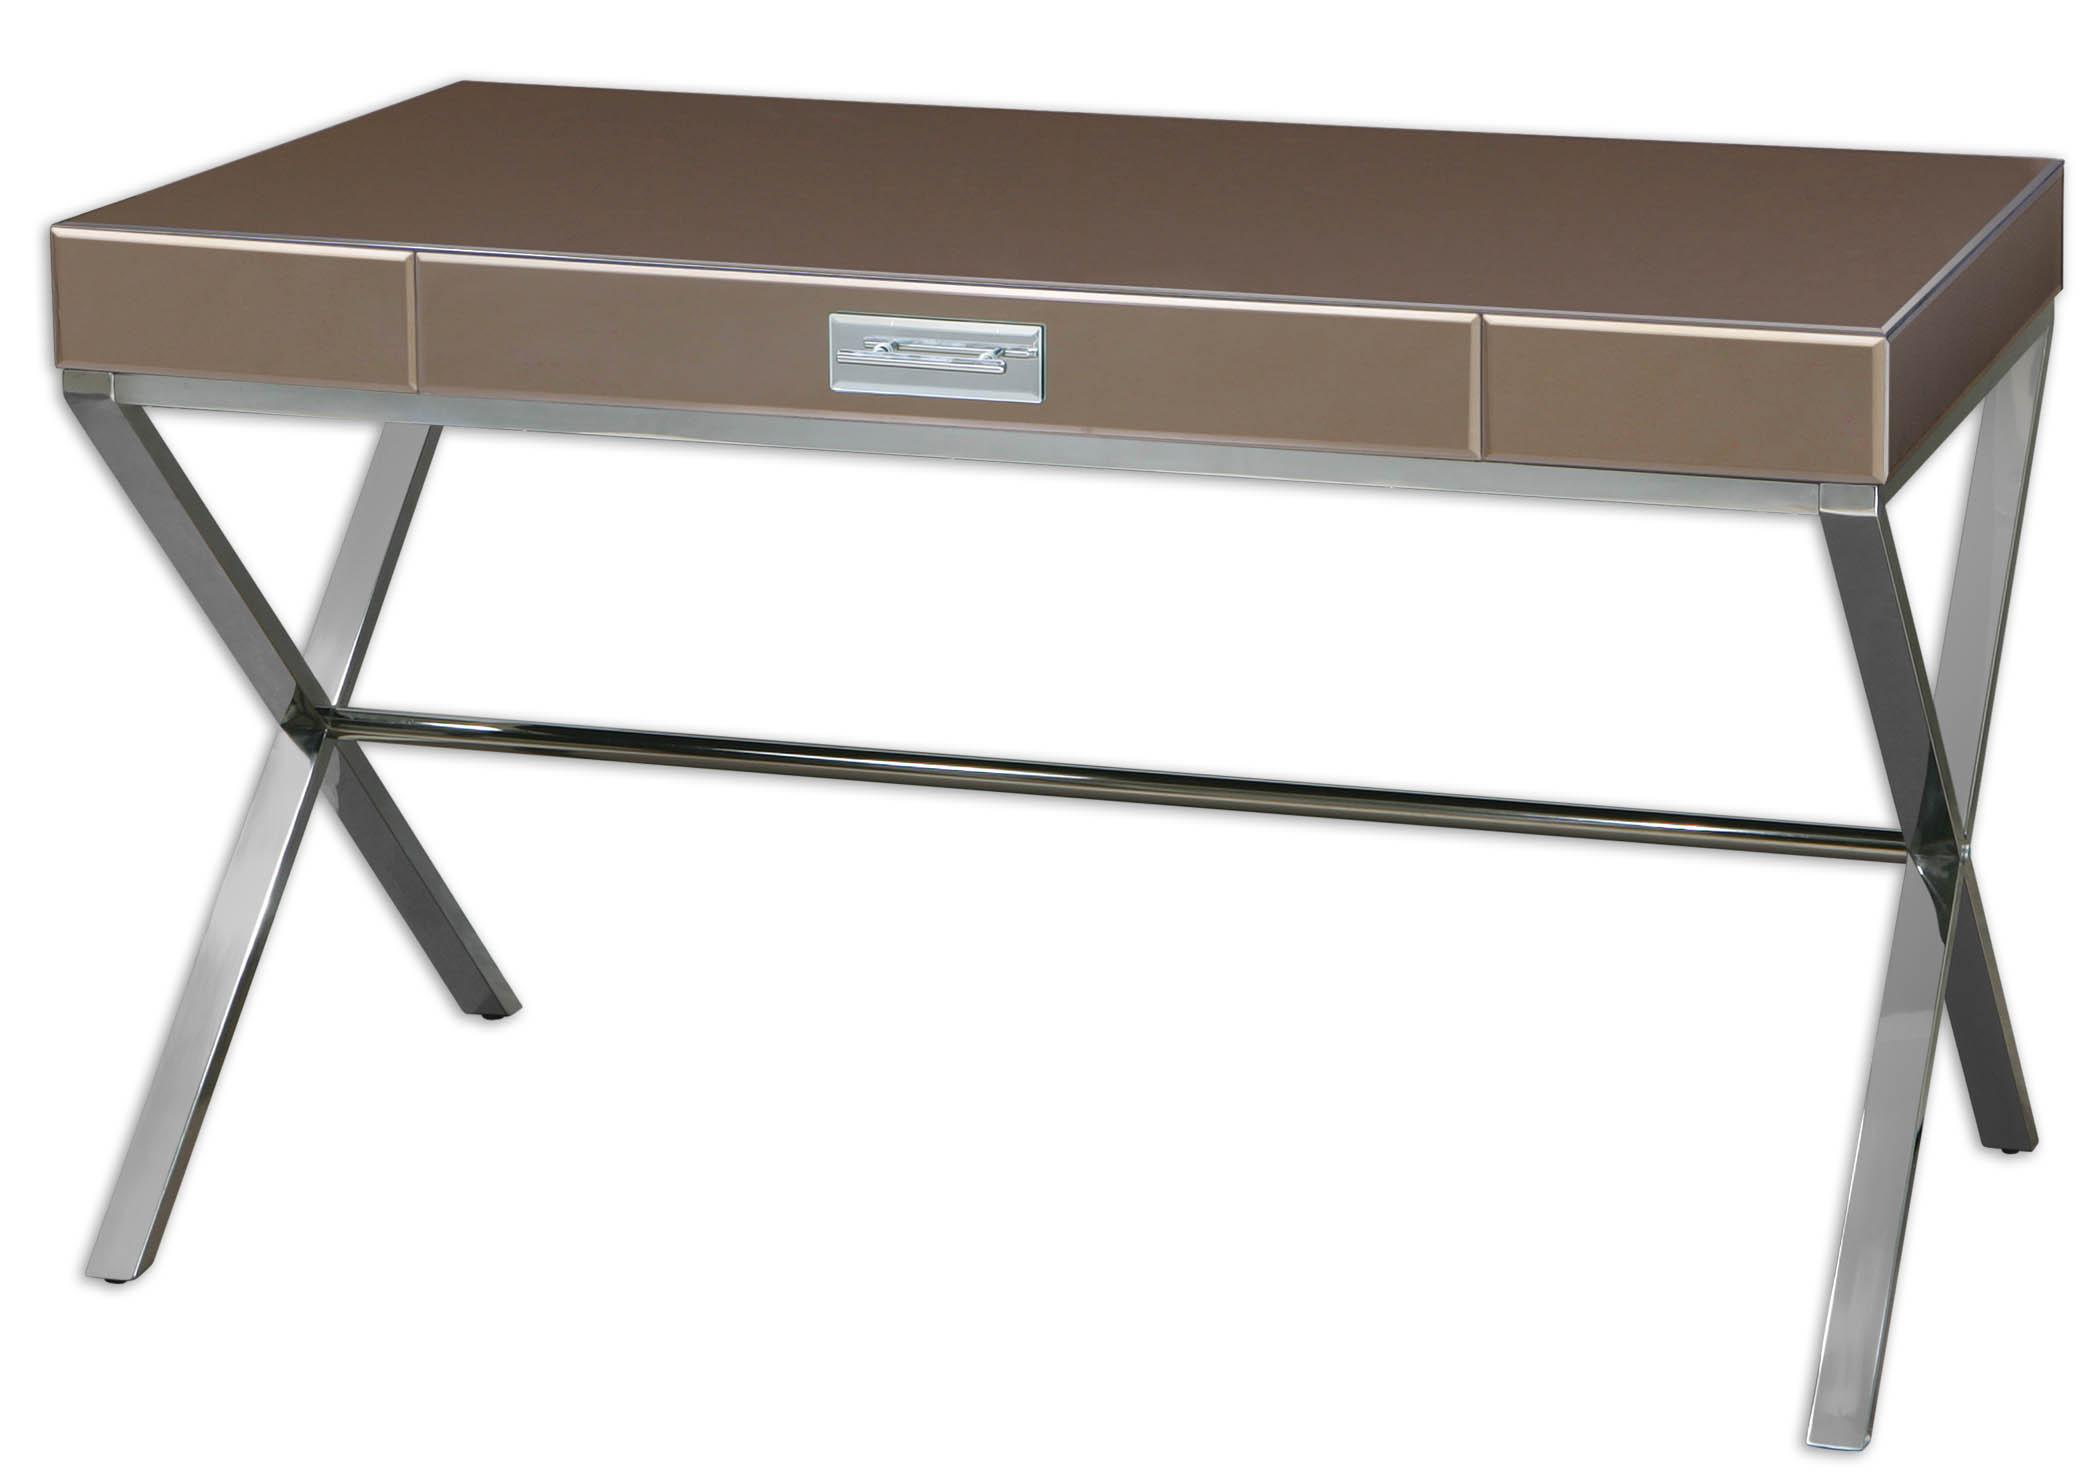 Uttermost Accent Furniture Lexia Desk - Item Number: 24298